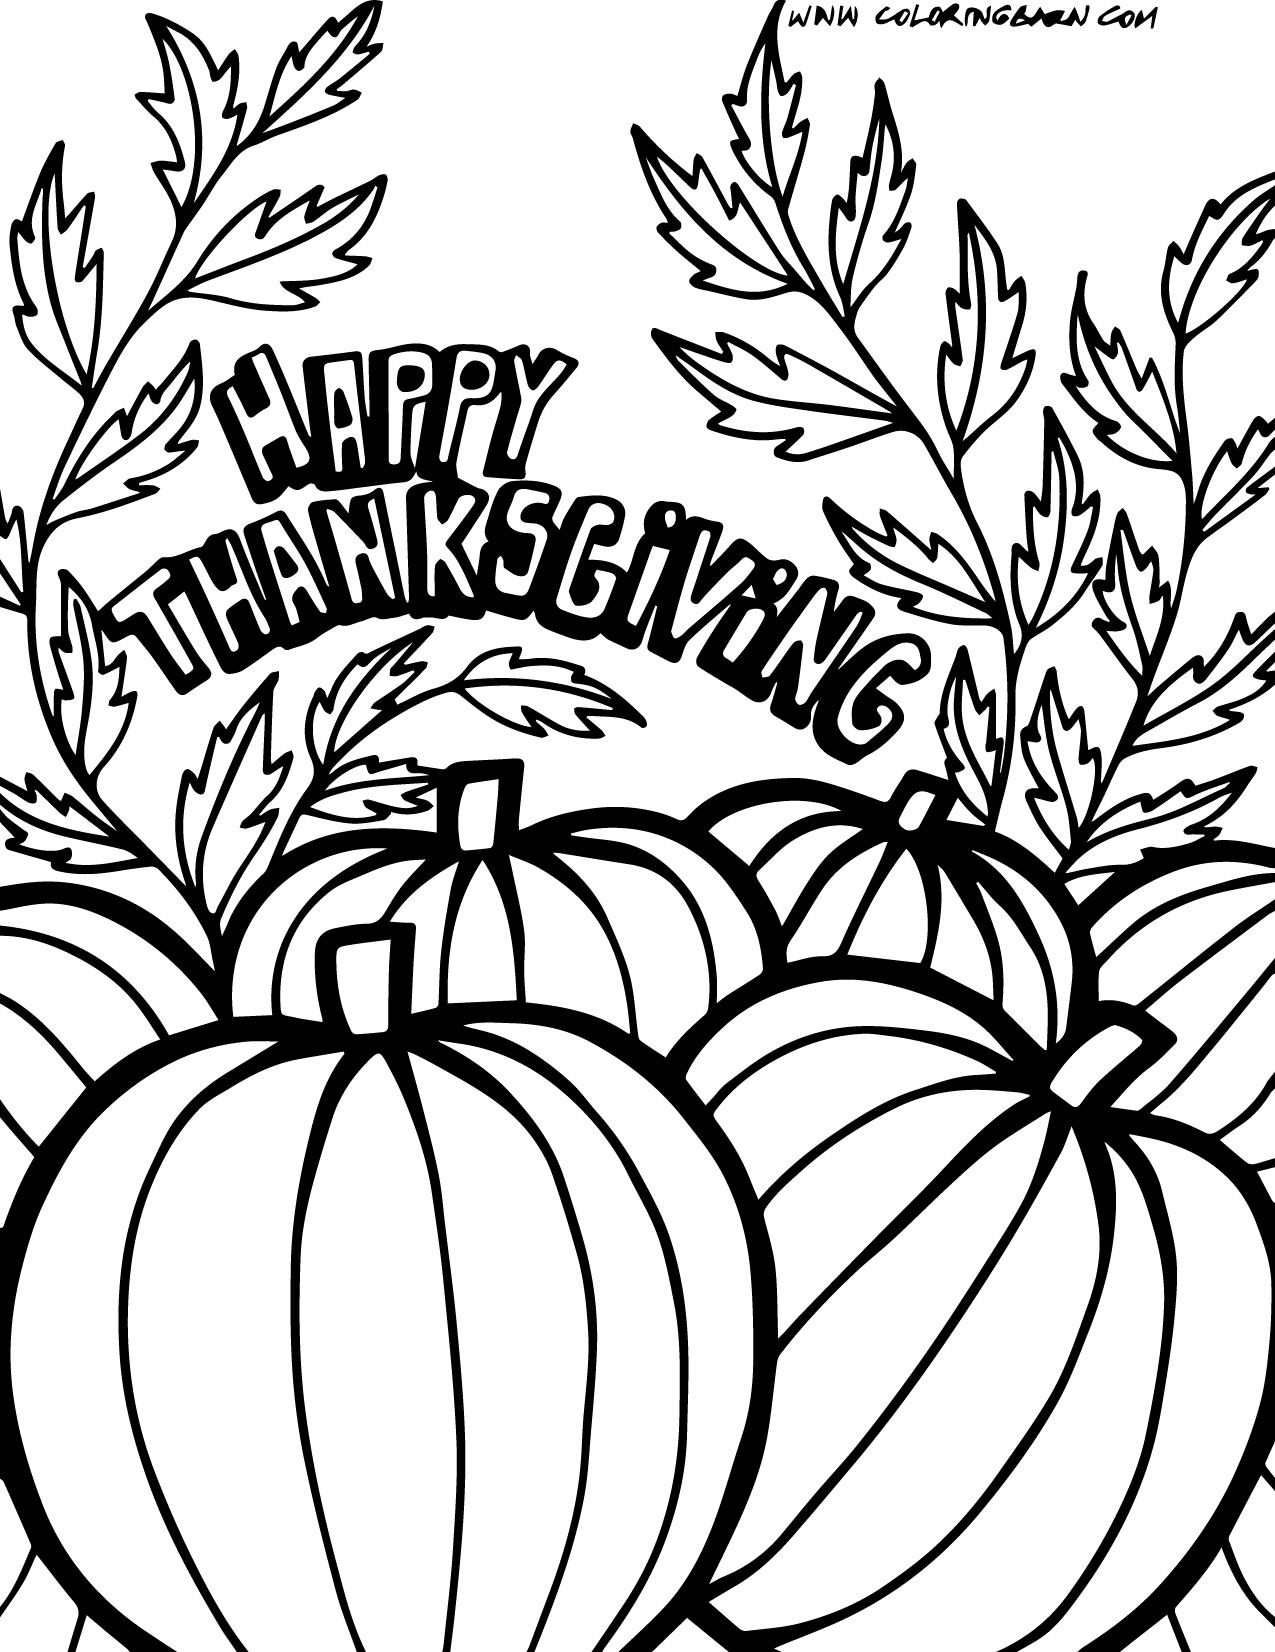 Coloring pitchers of animals - Free Thanksgiving Color Pages Coloring Picture Animal Mcoloring